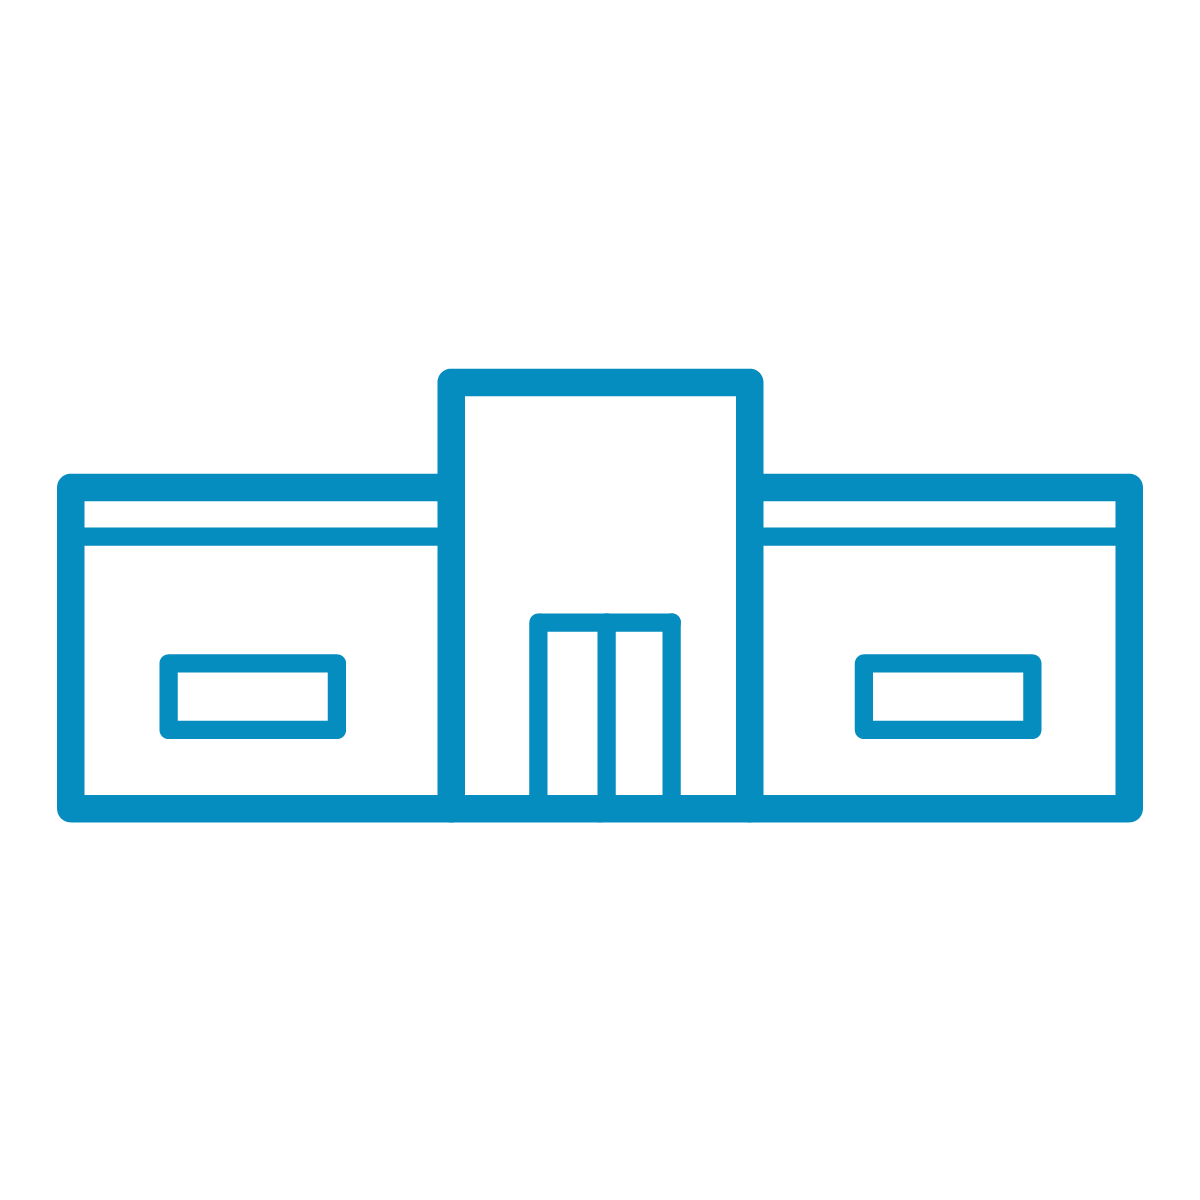 icon-bldg-commercial-blue.png